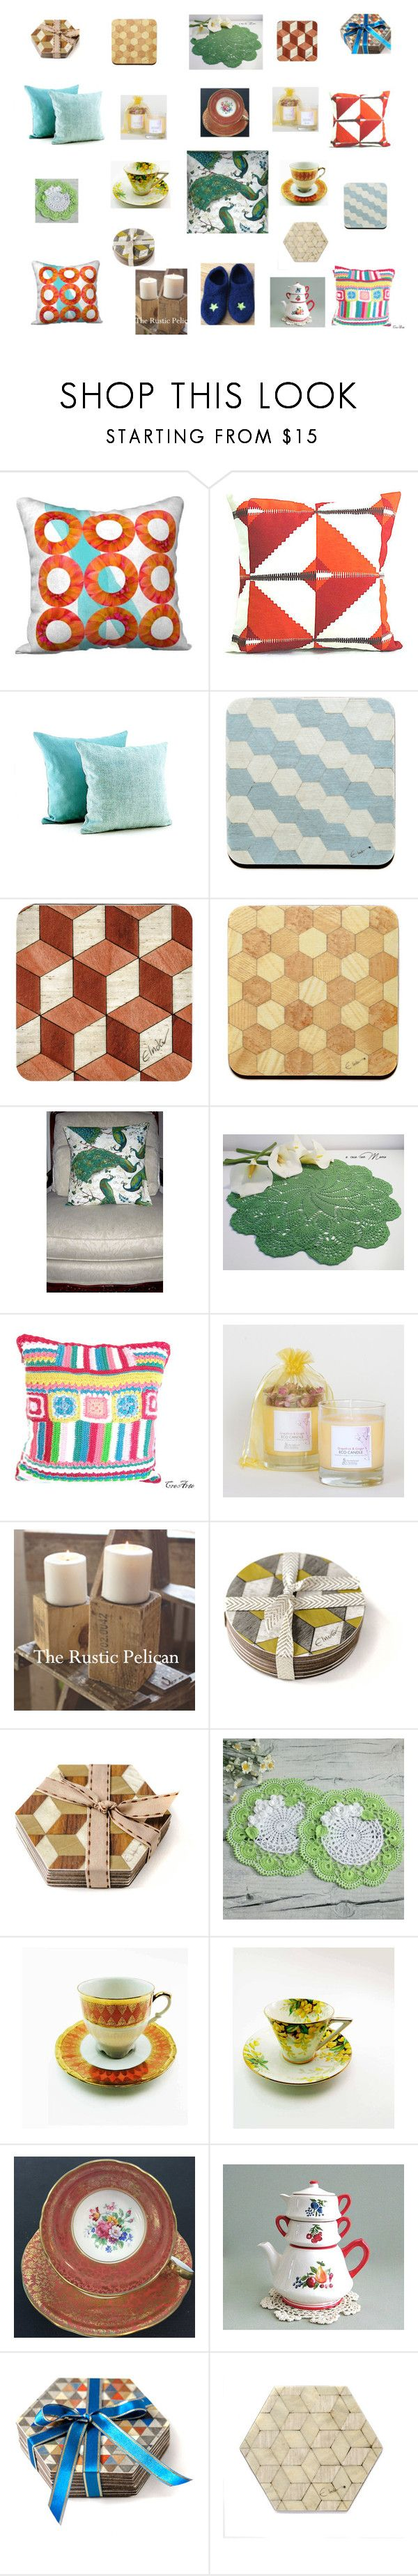 """Cushions Candles Cups & Coasters make a house a home"" by einder ❤ liked on Polyvore featuring interior, interiors, interior design, home, home decor, interior decorating, Aynsley and Dessous"